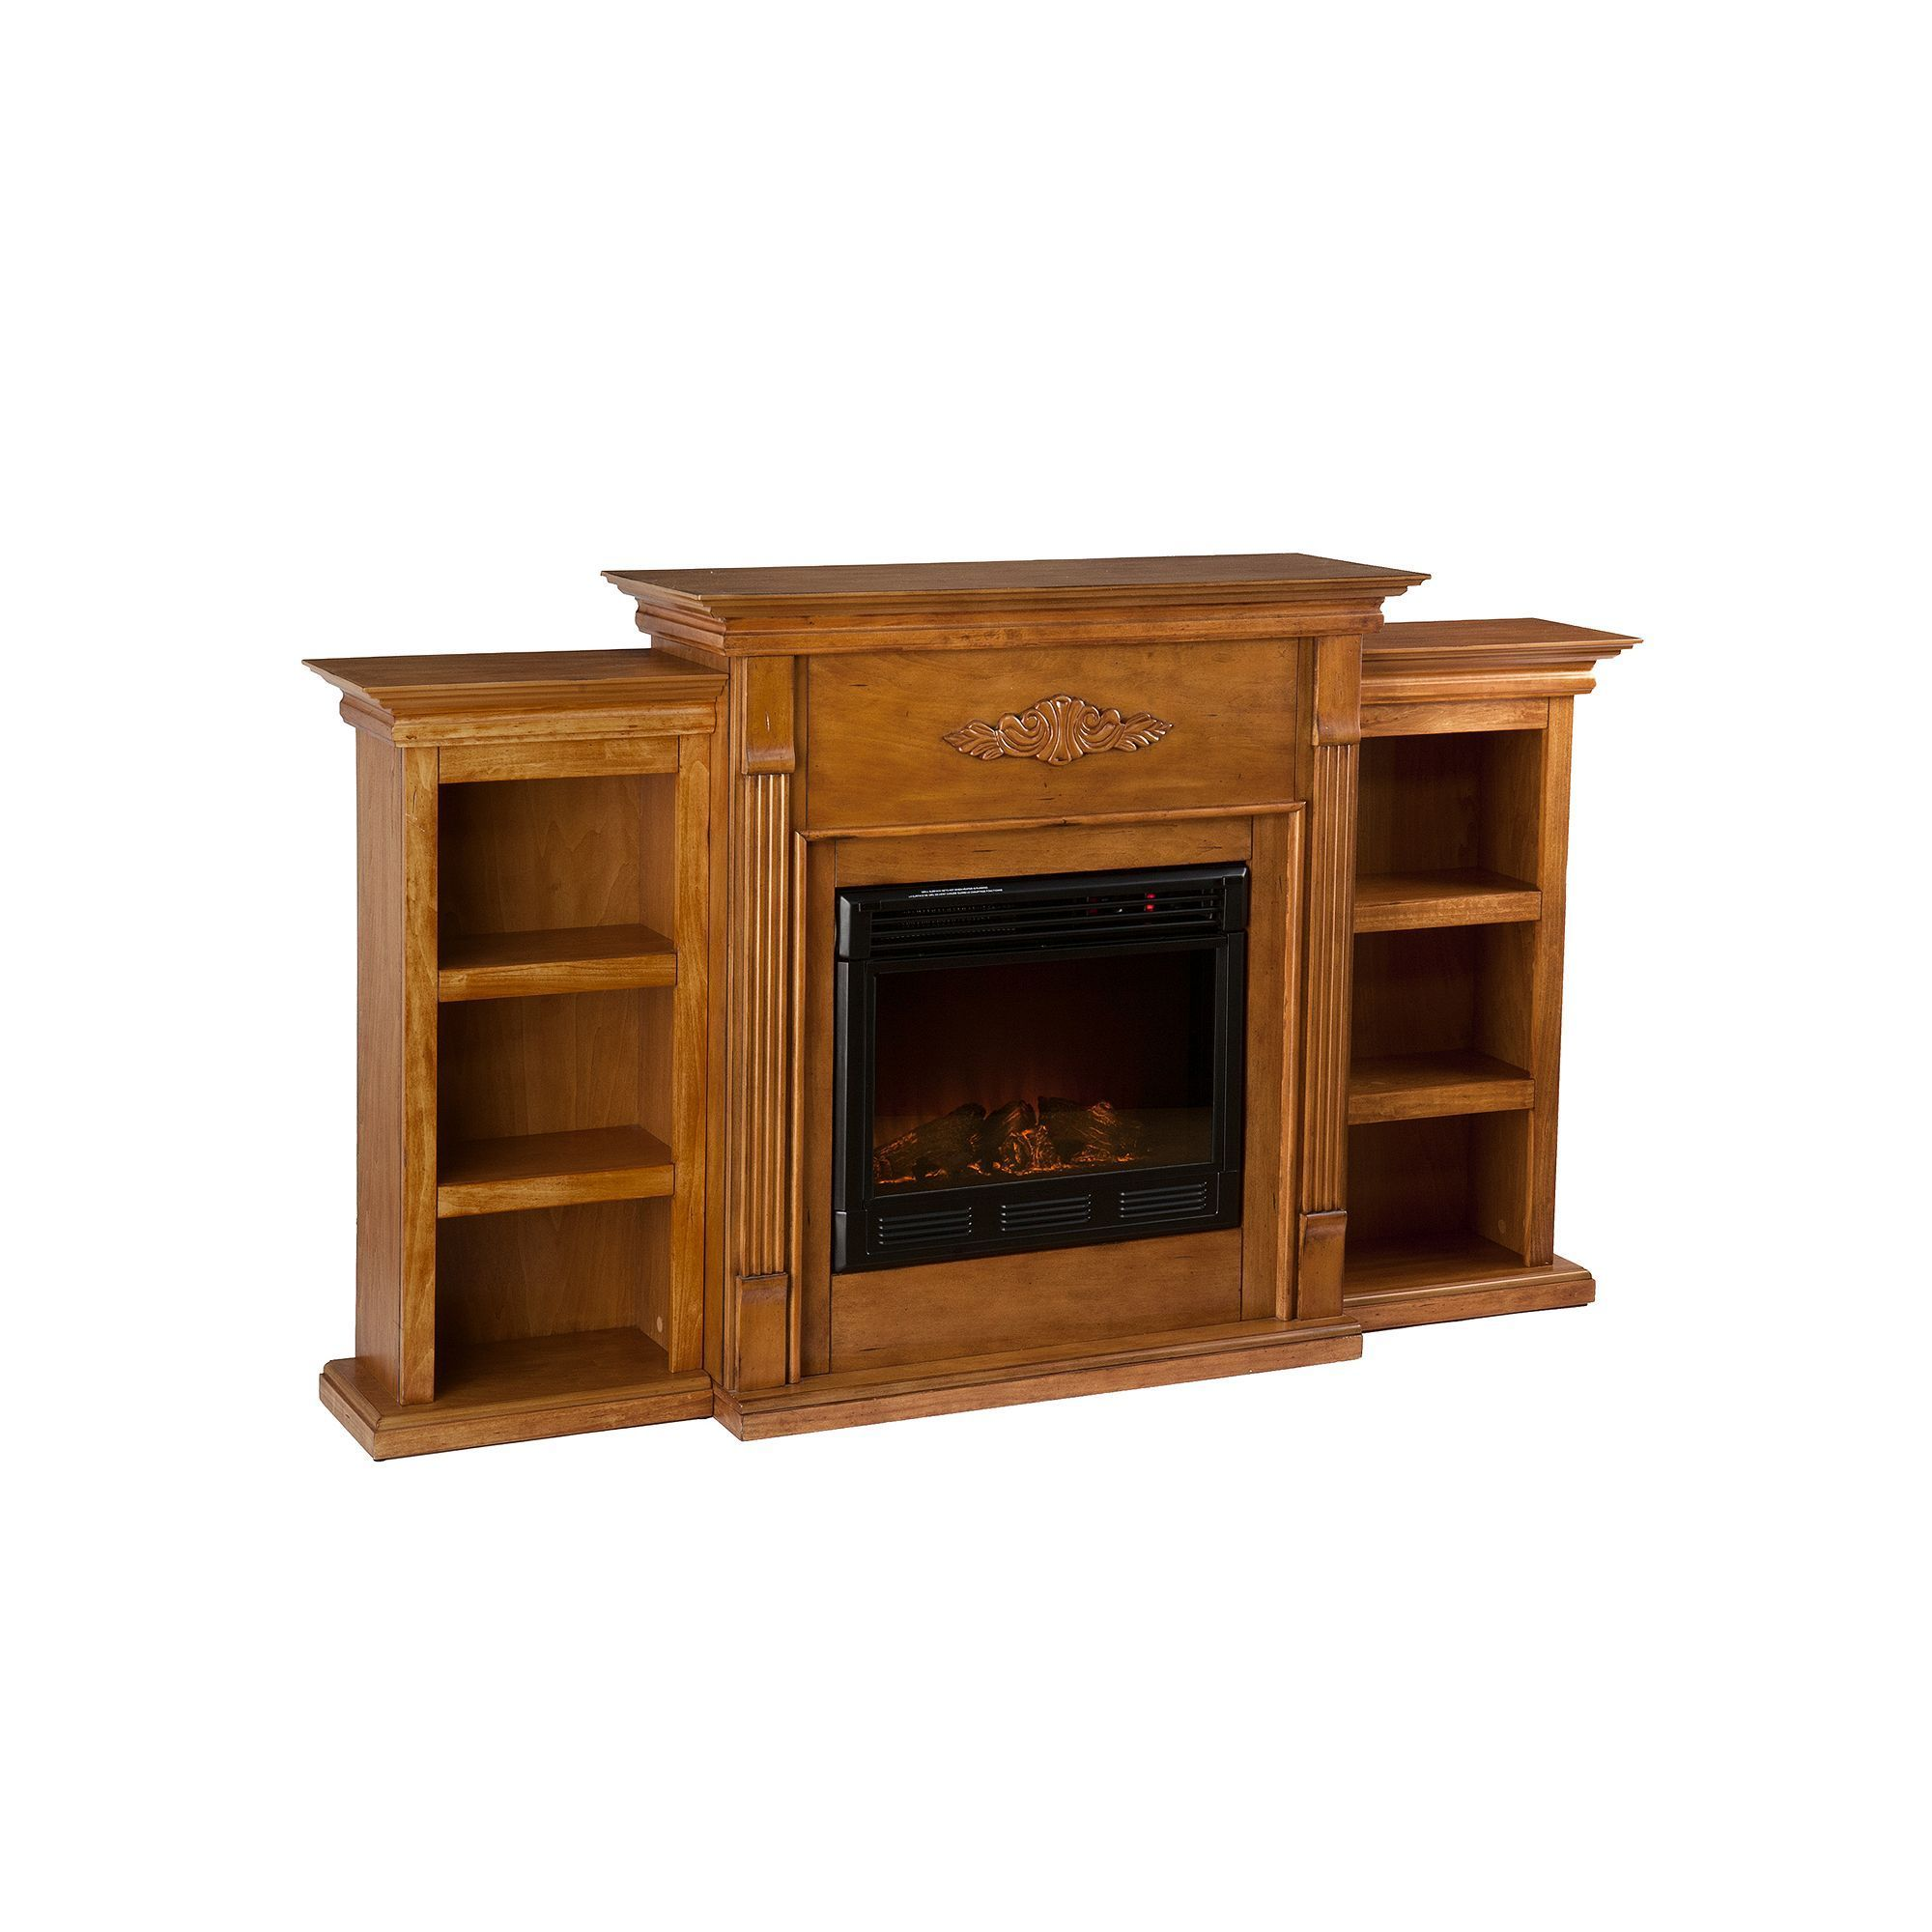 Tennyson Bookcase Electric Fireplace Southern Enterprises Tennyson Bookcase Electric Fireplace